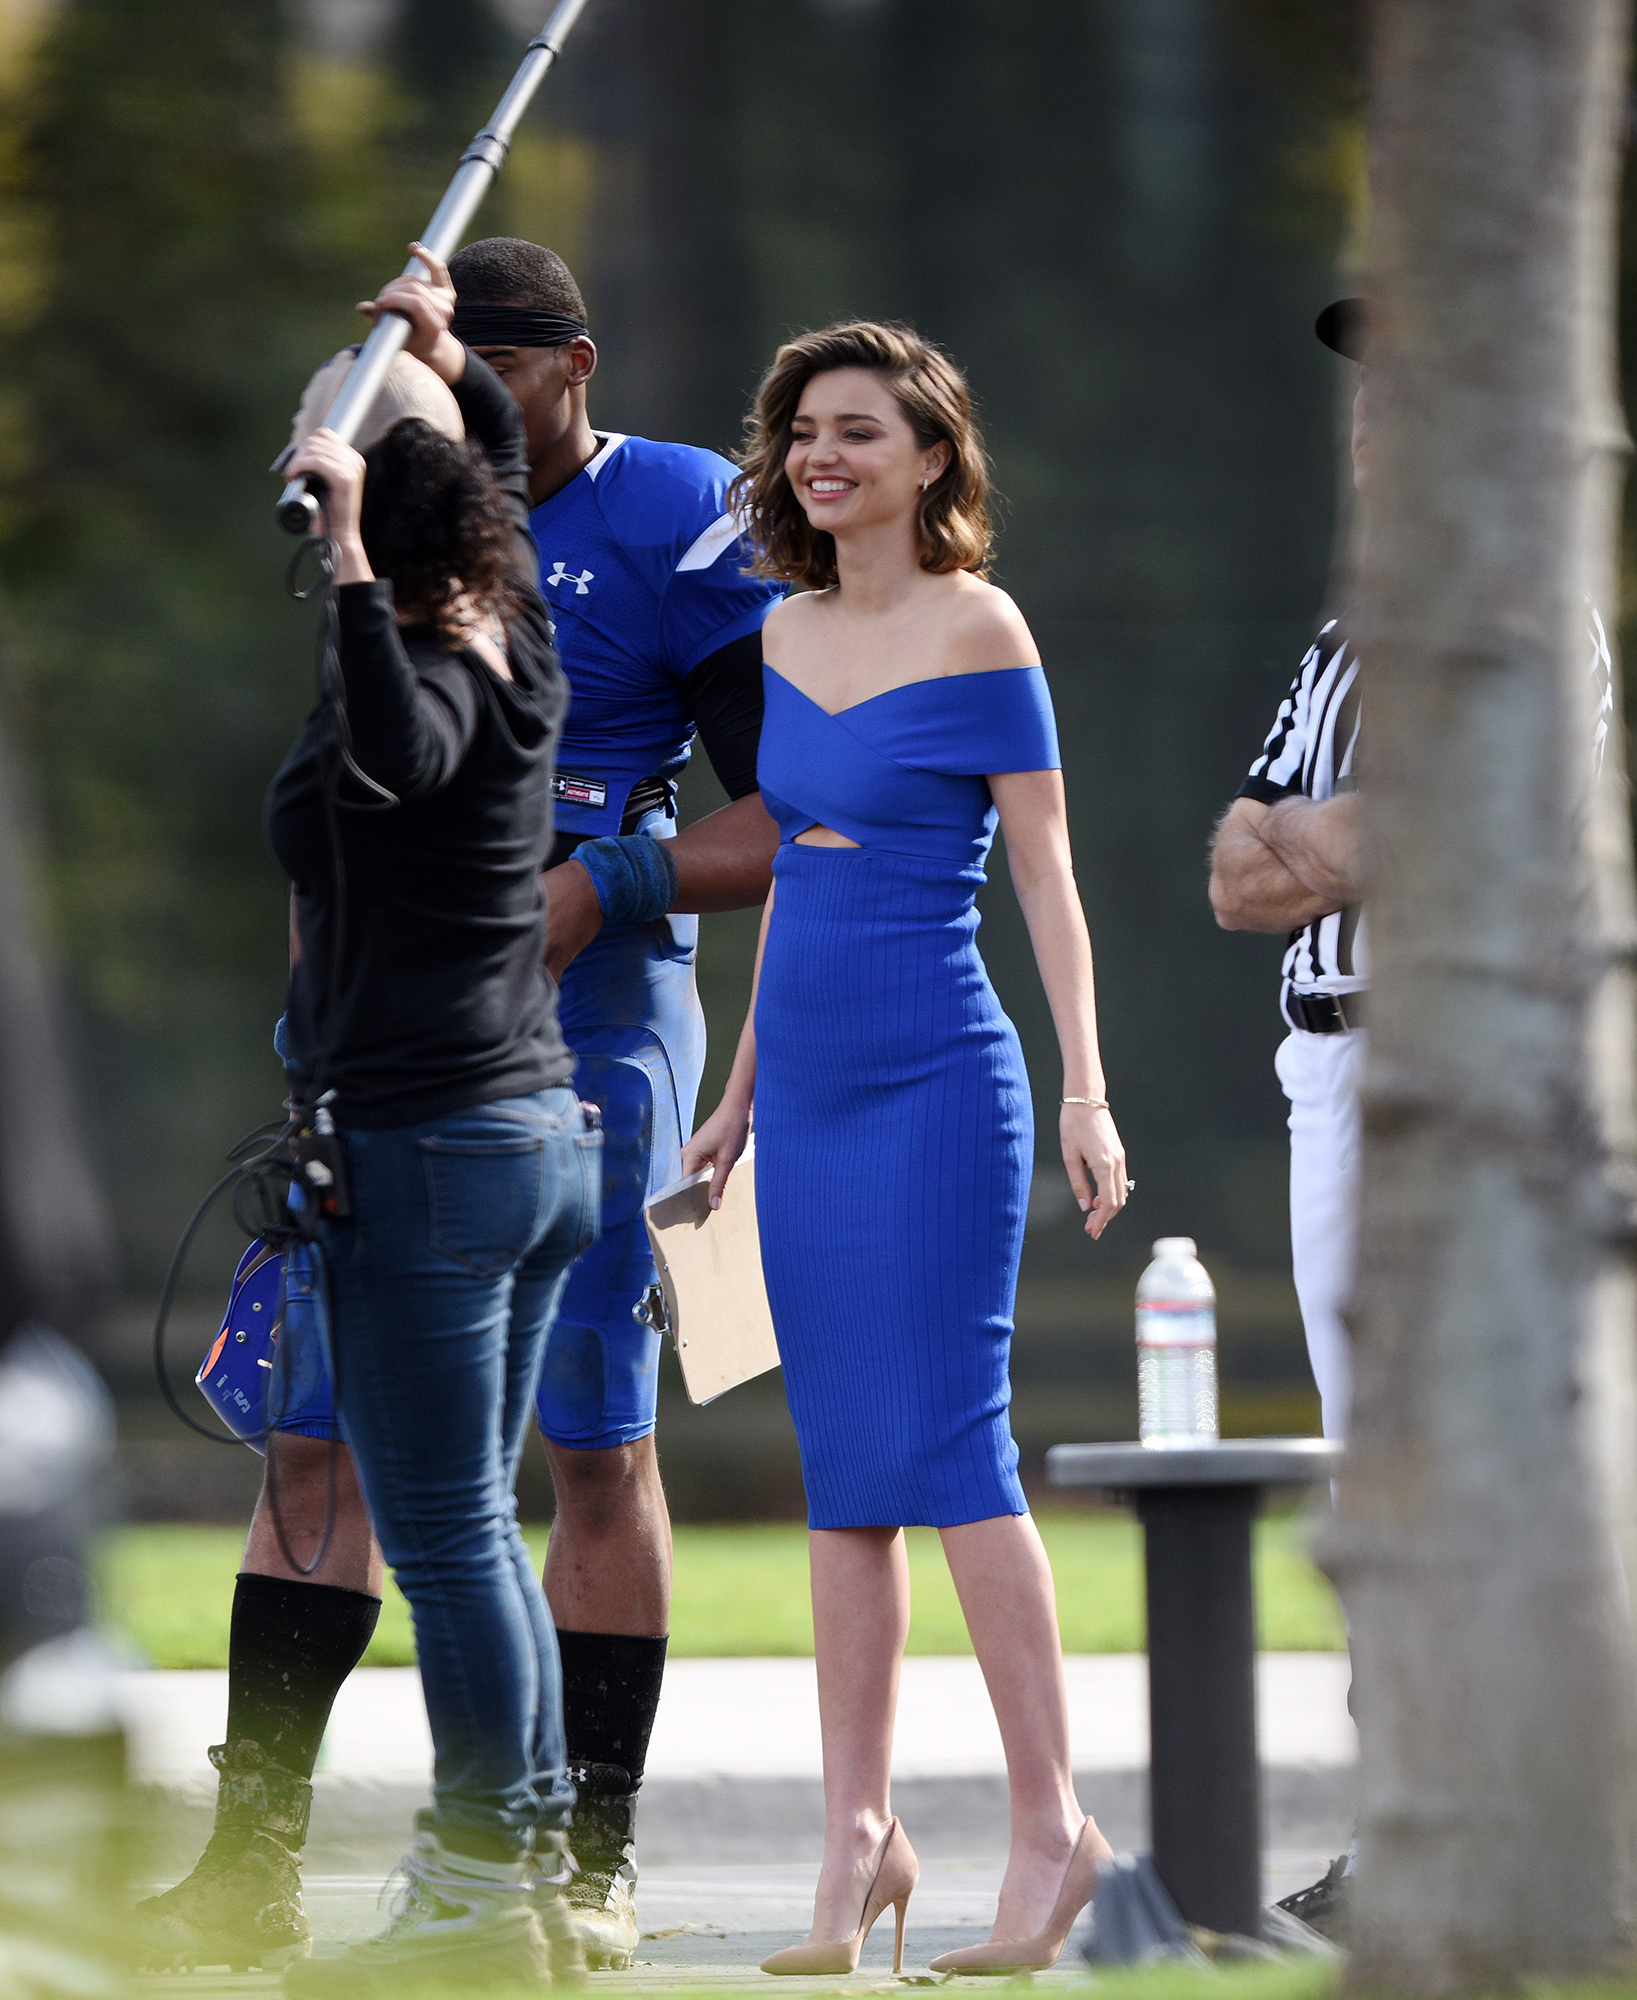 EXCLUSIVE: Miranda Kerr looking flawless during a photoshoot in L.A